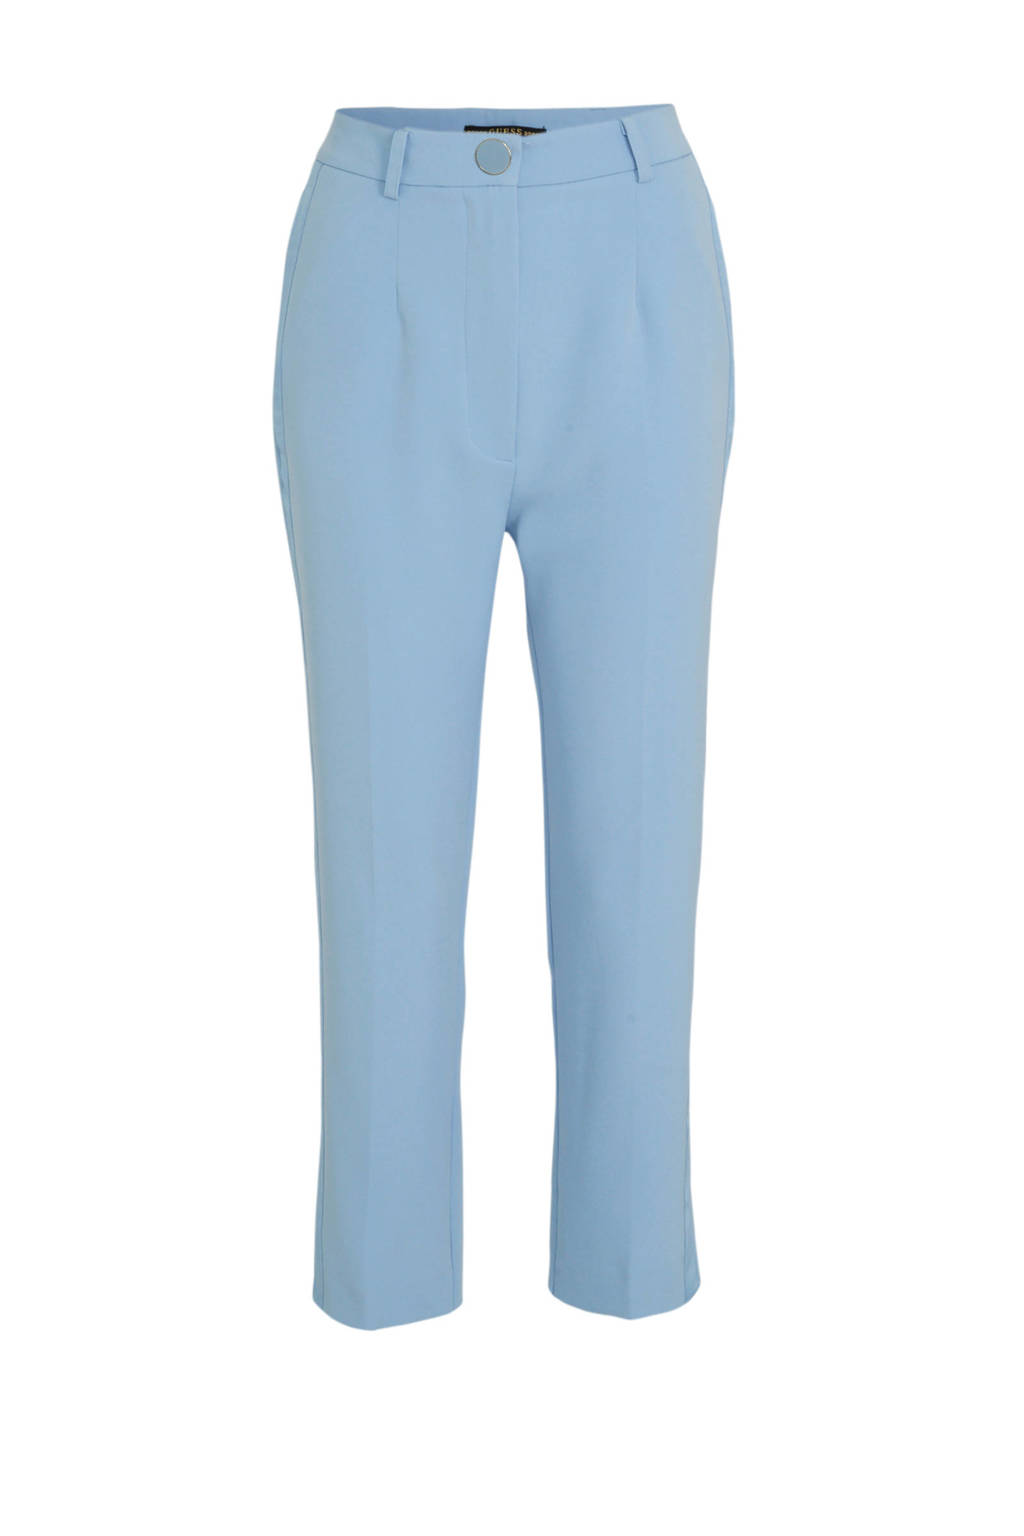 GUESS high waist straight fit pantalon Sophy met zijstreep lichtblauw, Lichtblauw